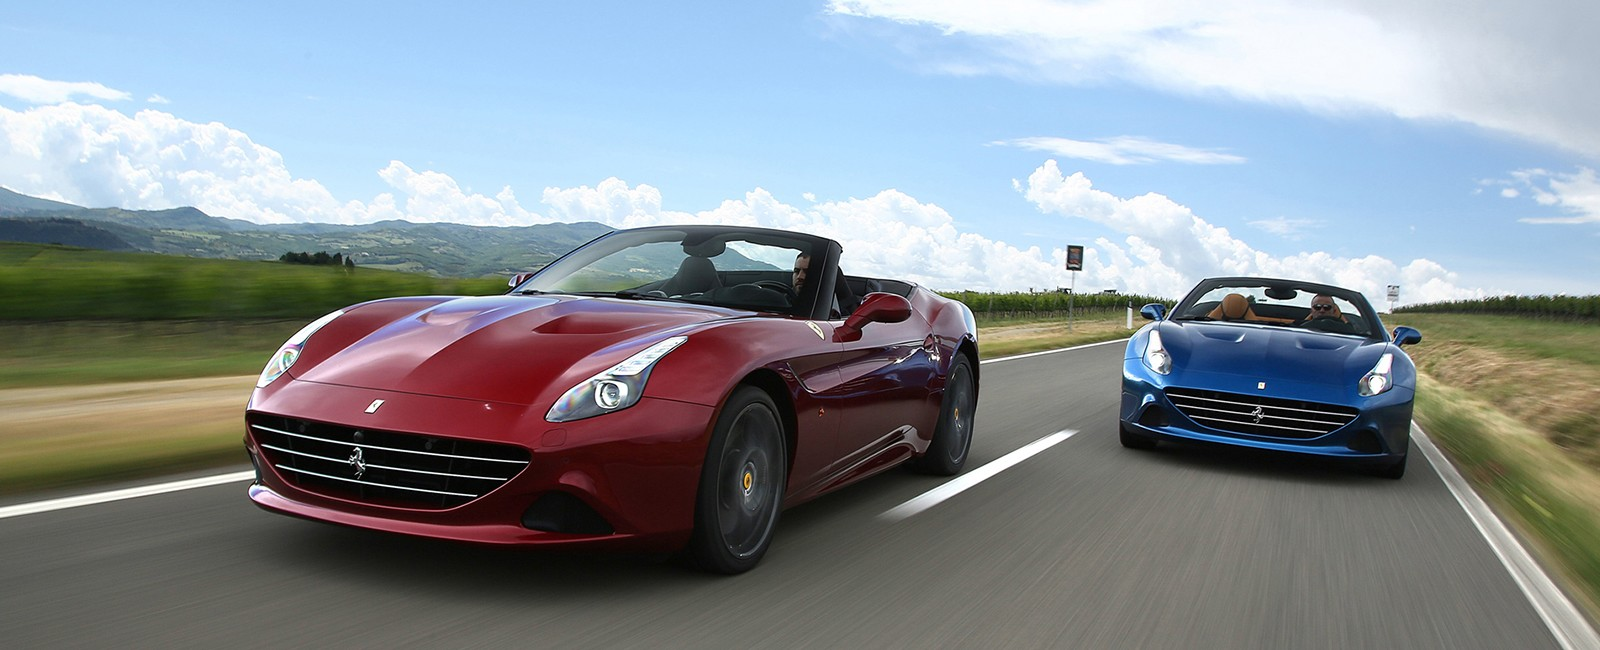 Ferrari California Ts on country road